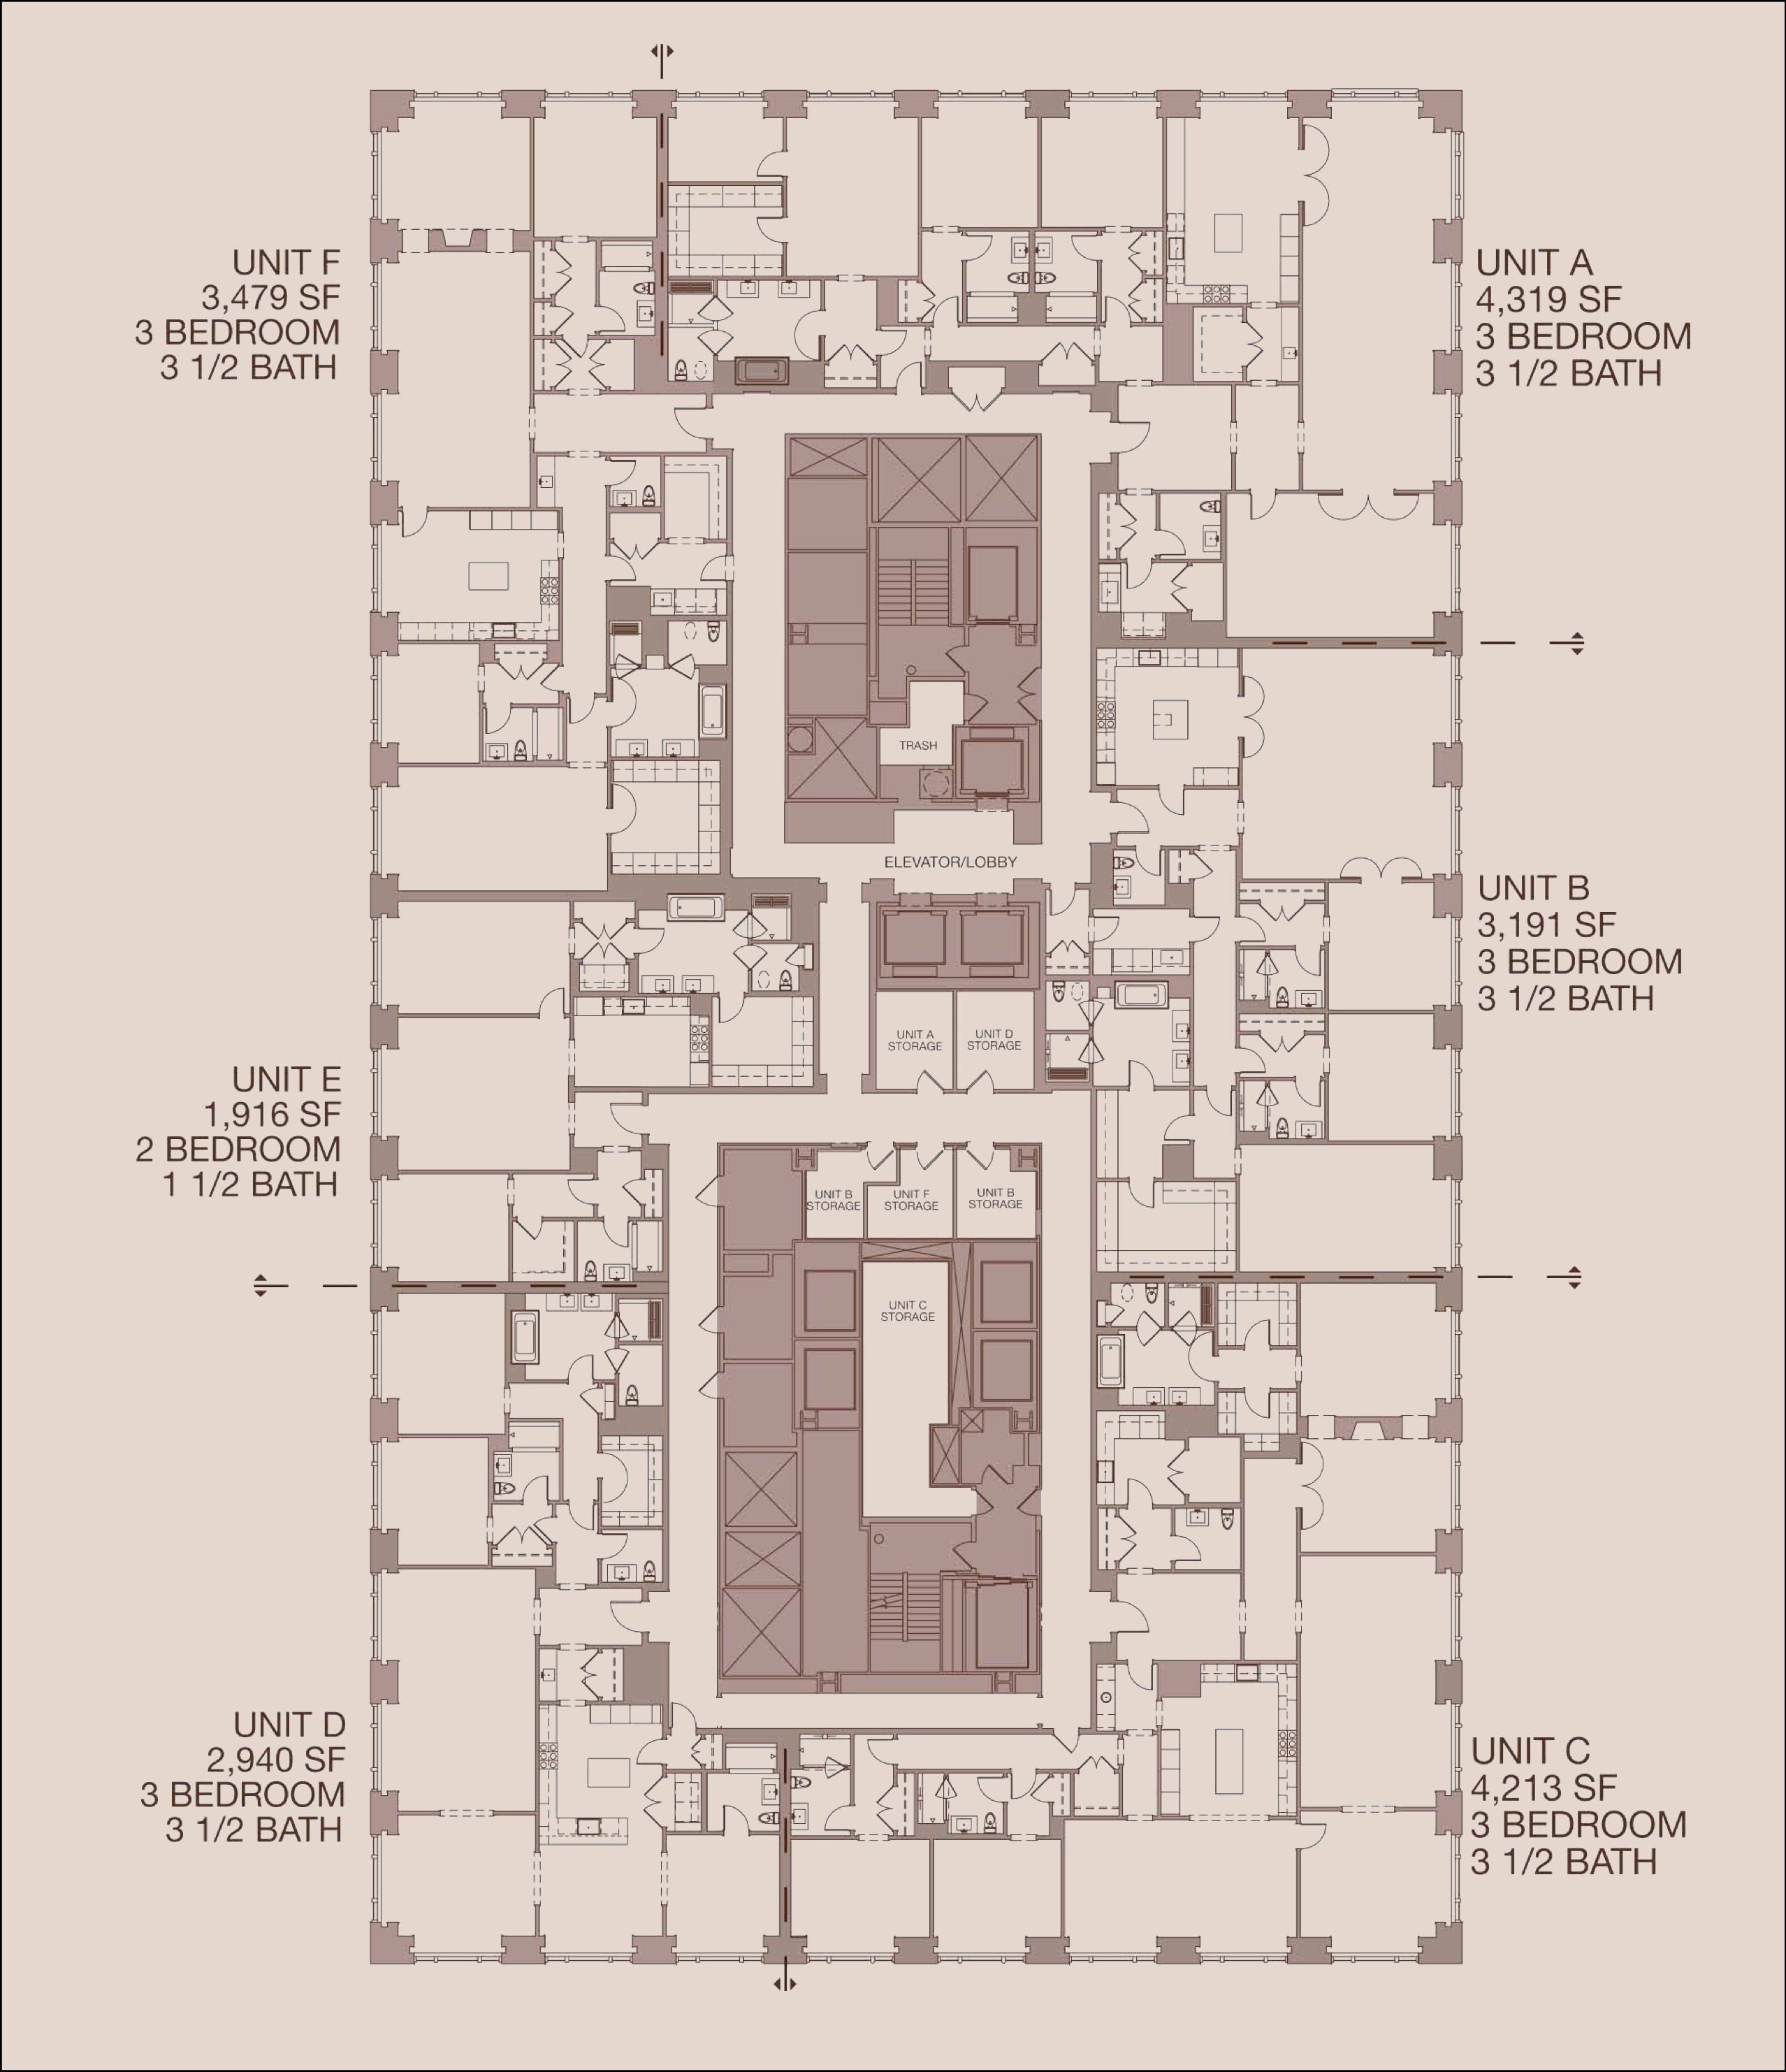 900 North Michigan Floor Plans - Chicago, USA. in 2019 ... on chicago theater seating layout, chicago brownstone floor plans, chicago loft floor plans, london row houses floor plans,